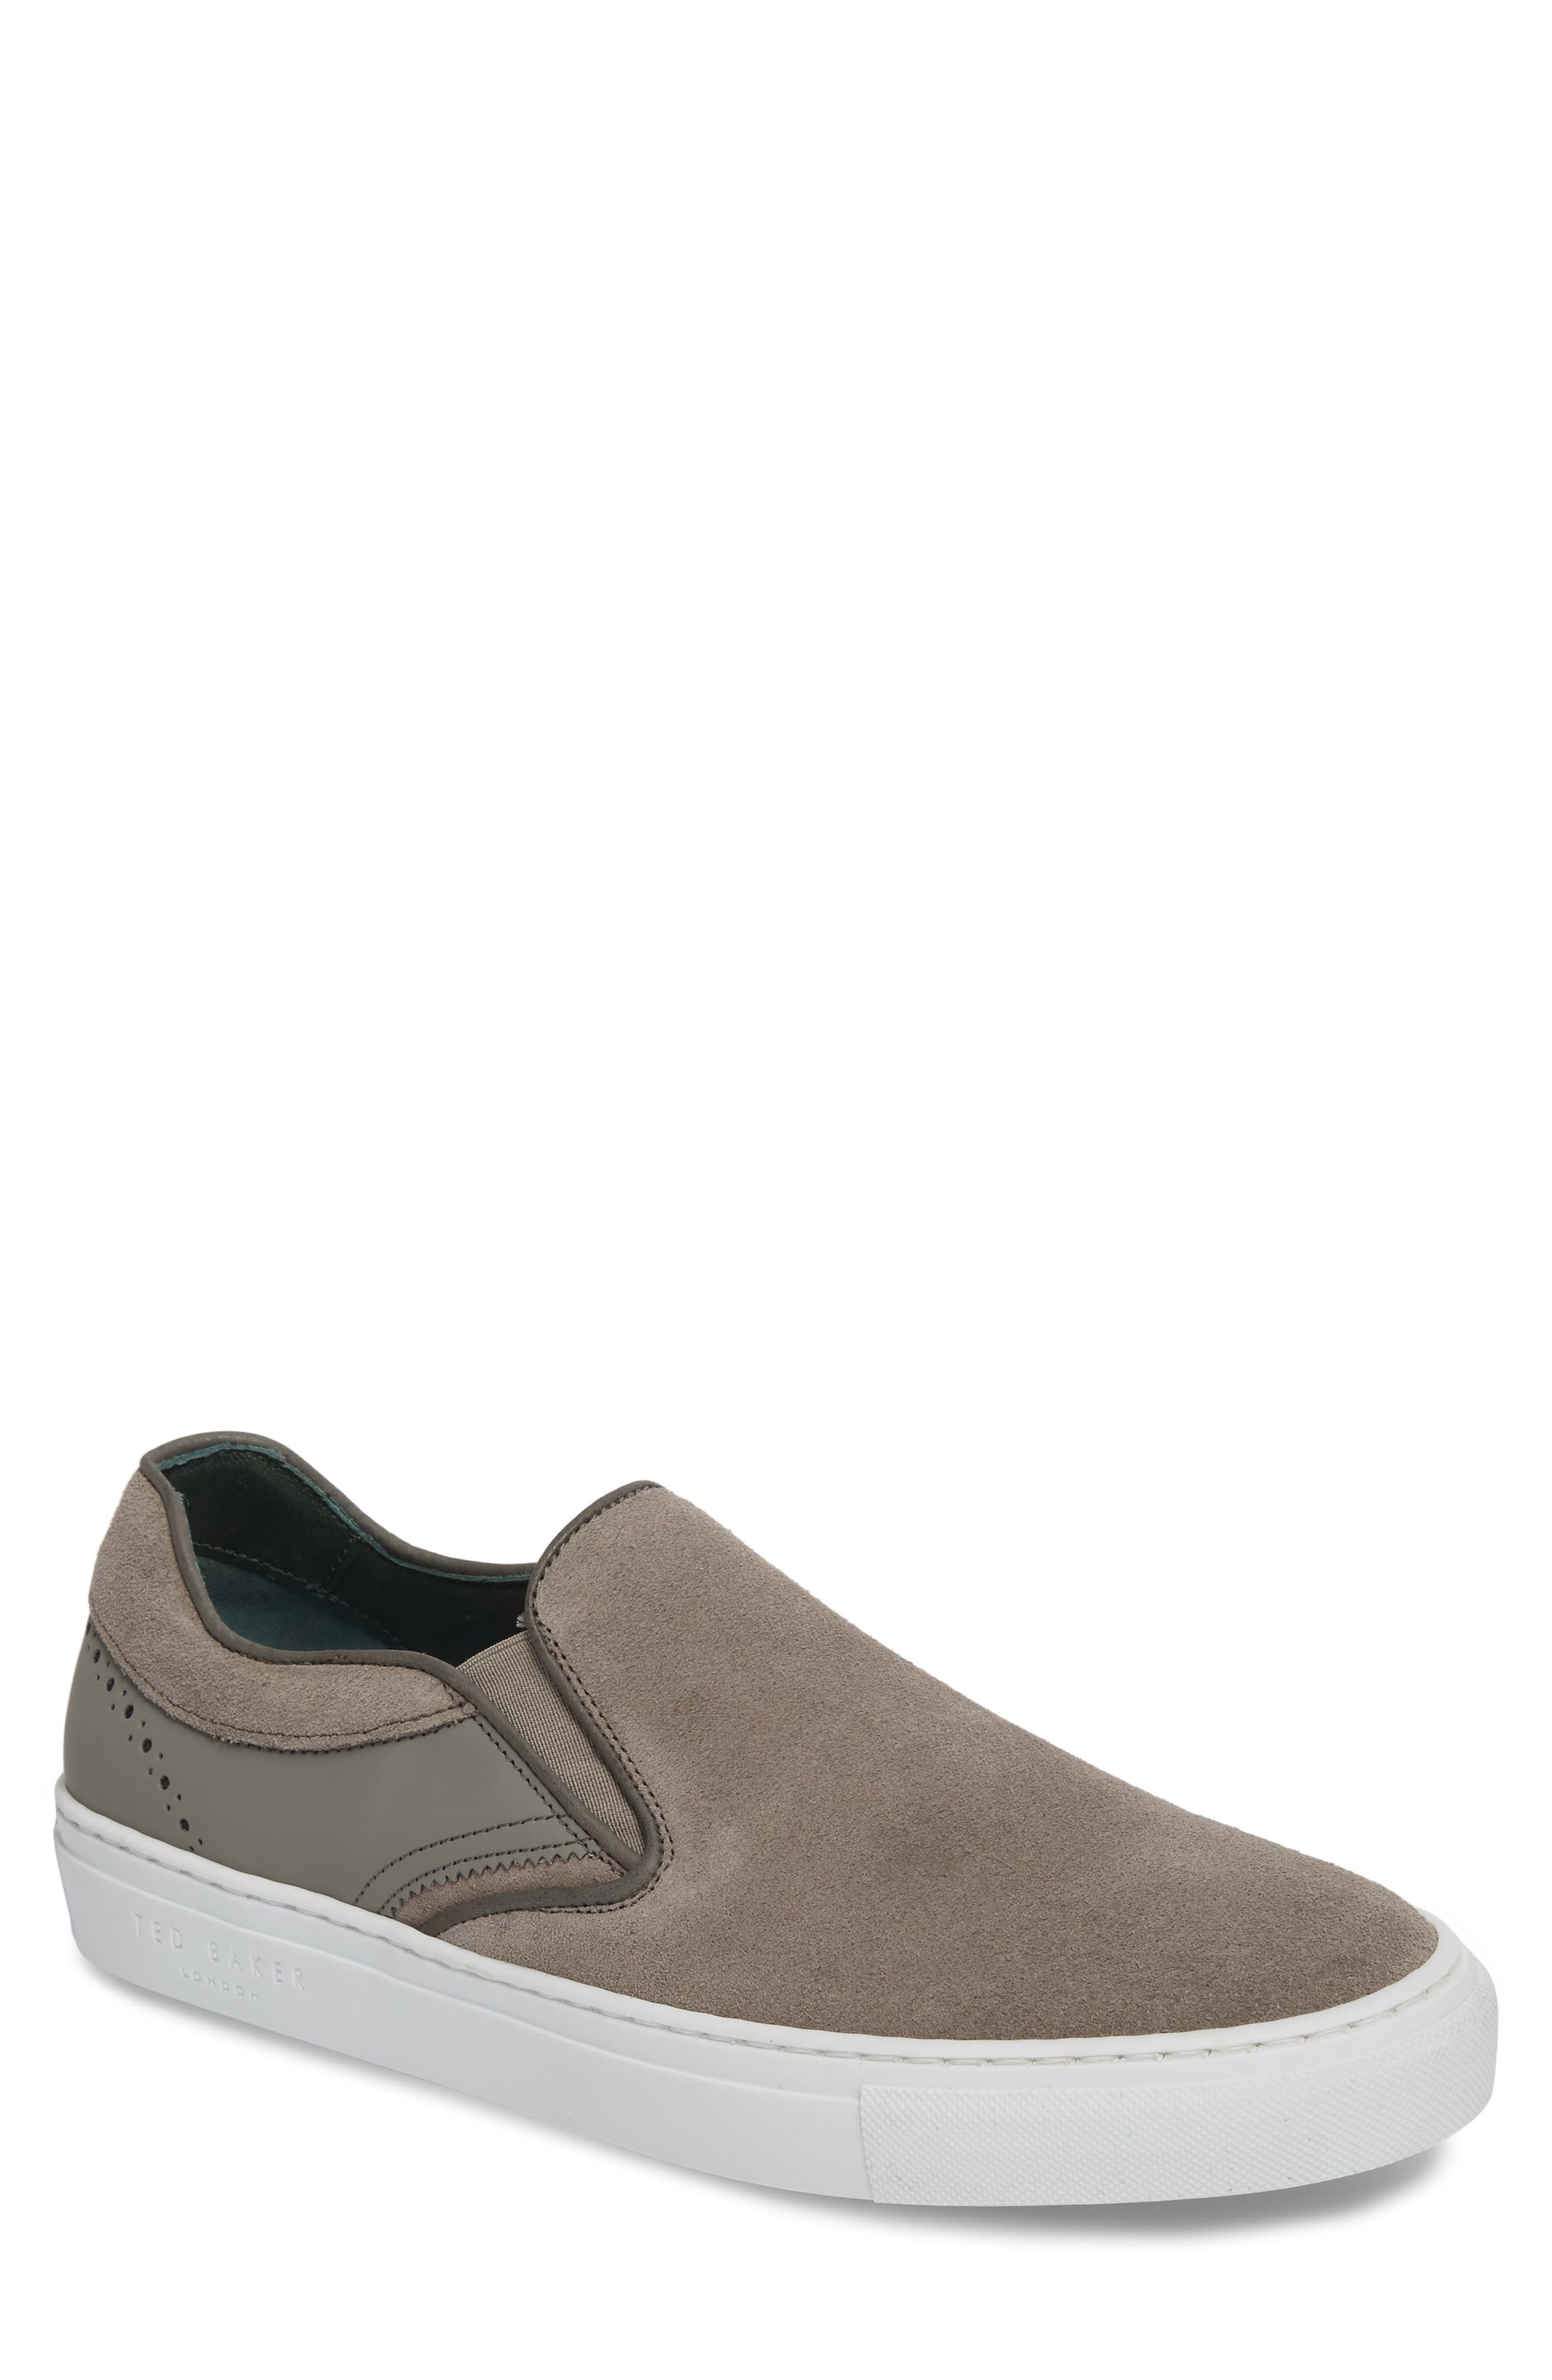 Reaine Brogued Slip-On Sneaker,                         Main,                         color, LIGHT GREY LEATHER